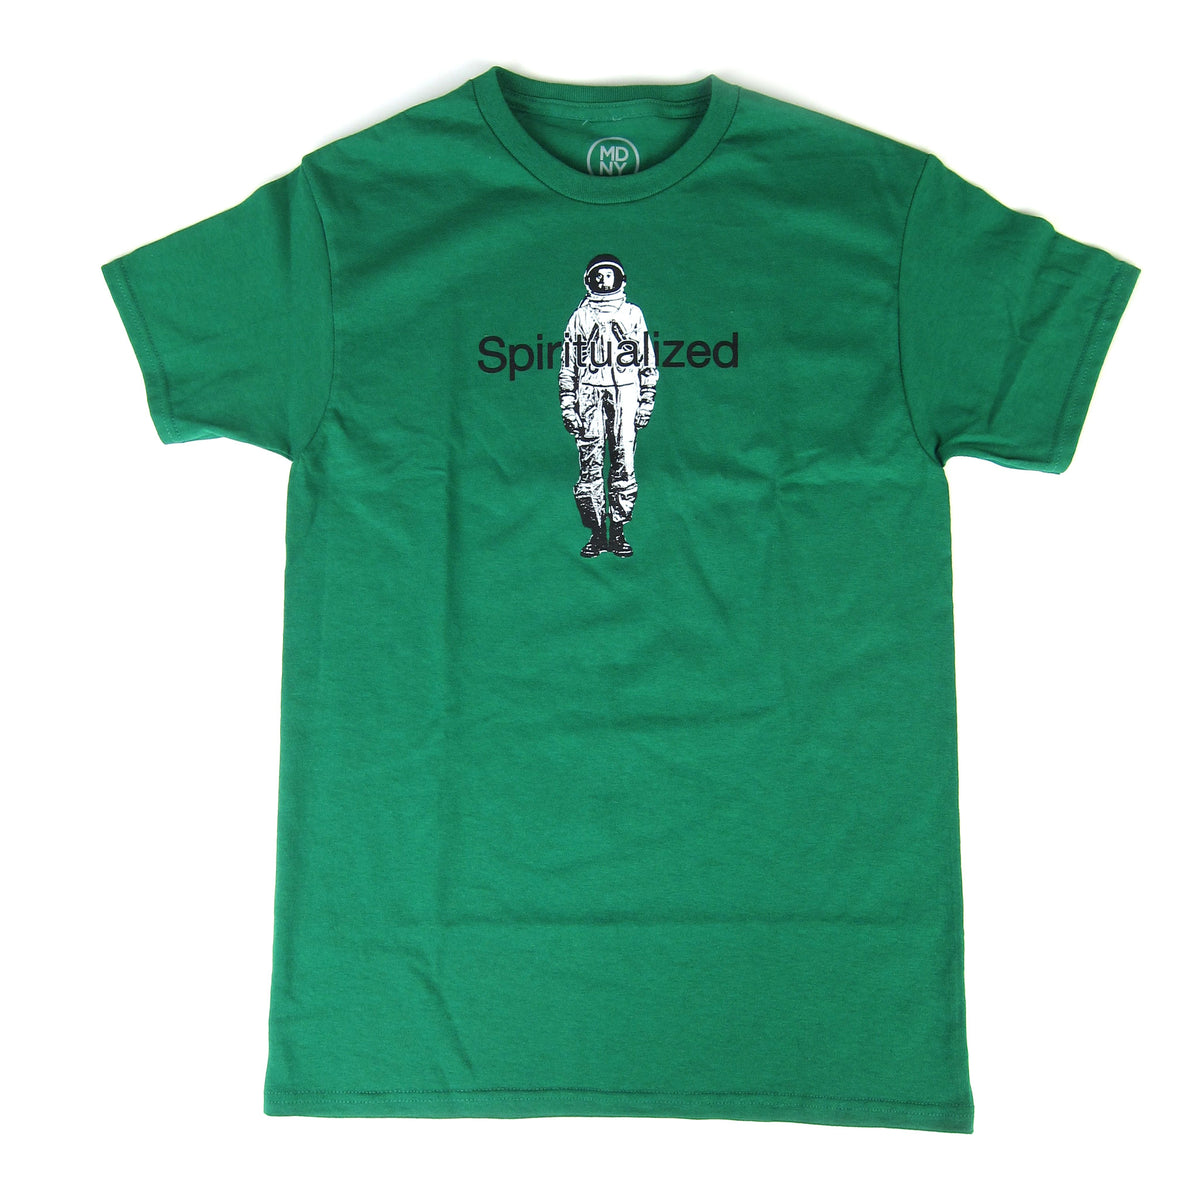 Spiritualized: Spaceman Shirt - Green